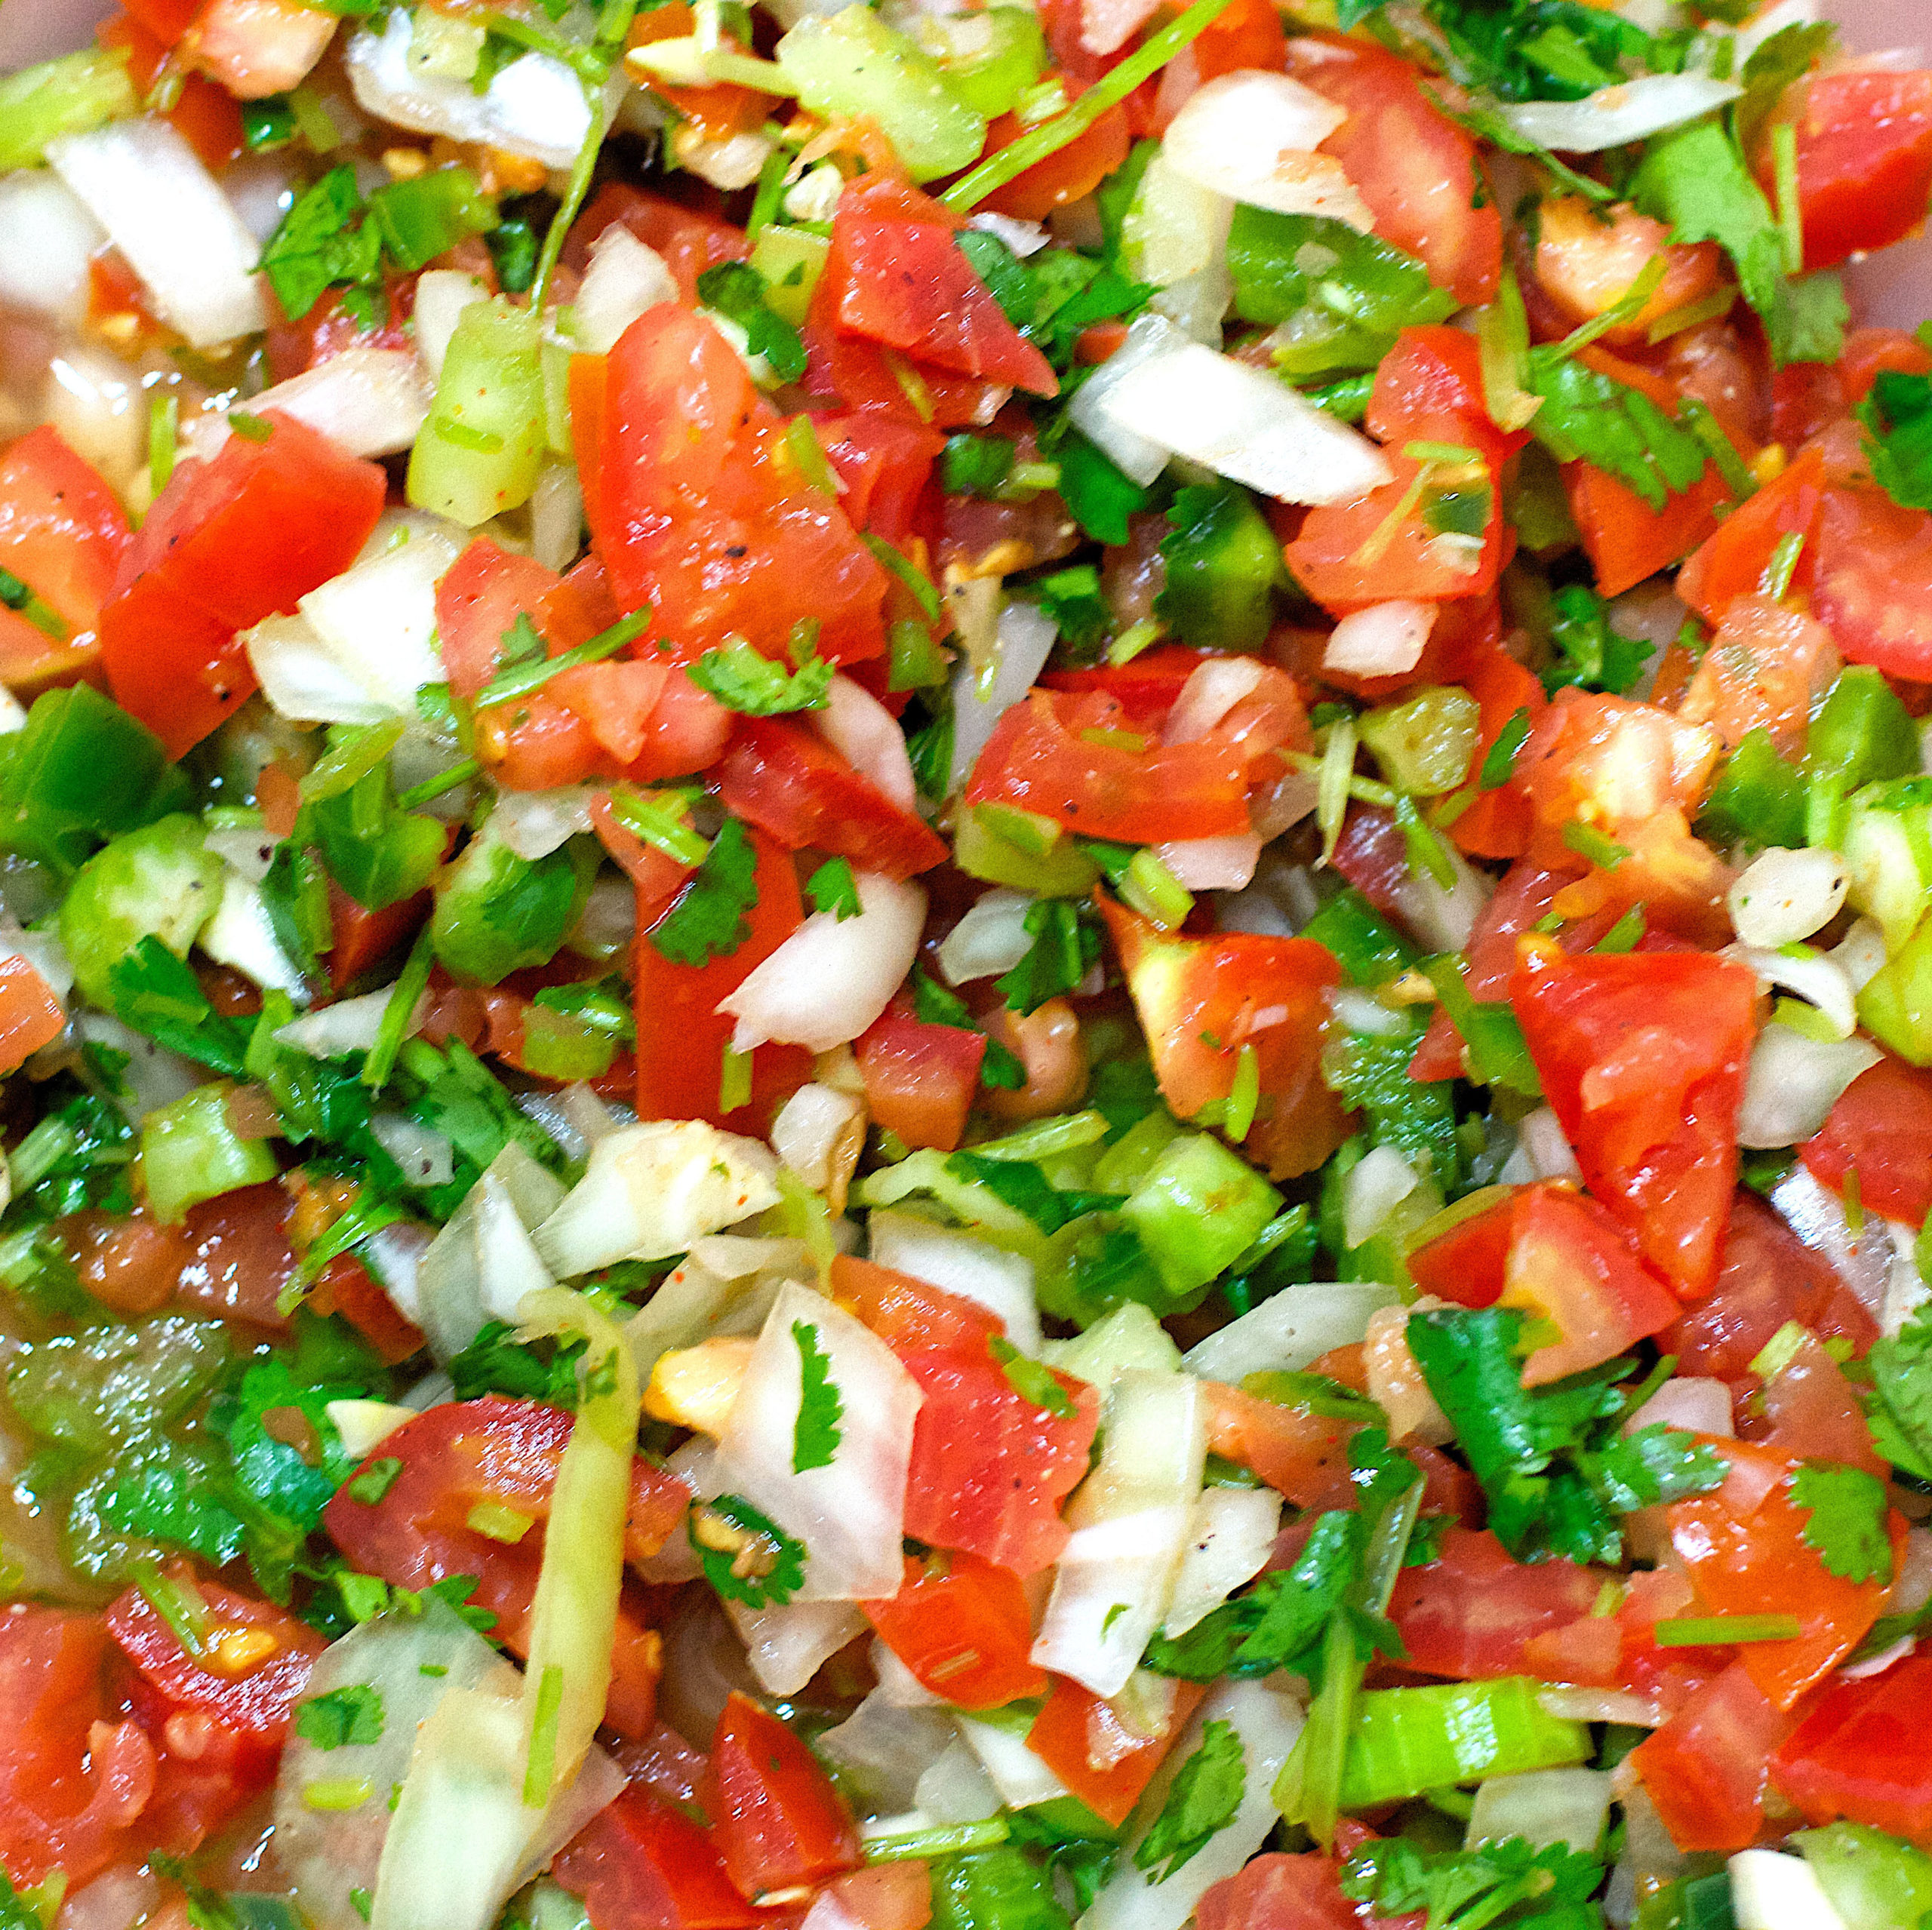 pico-de-gallo recipe